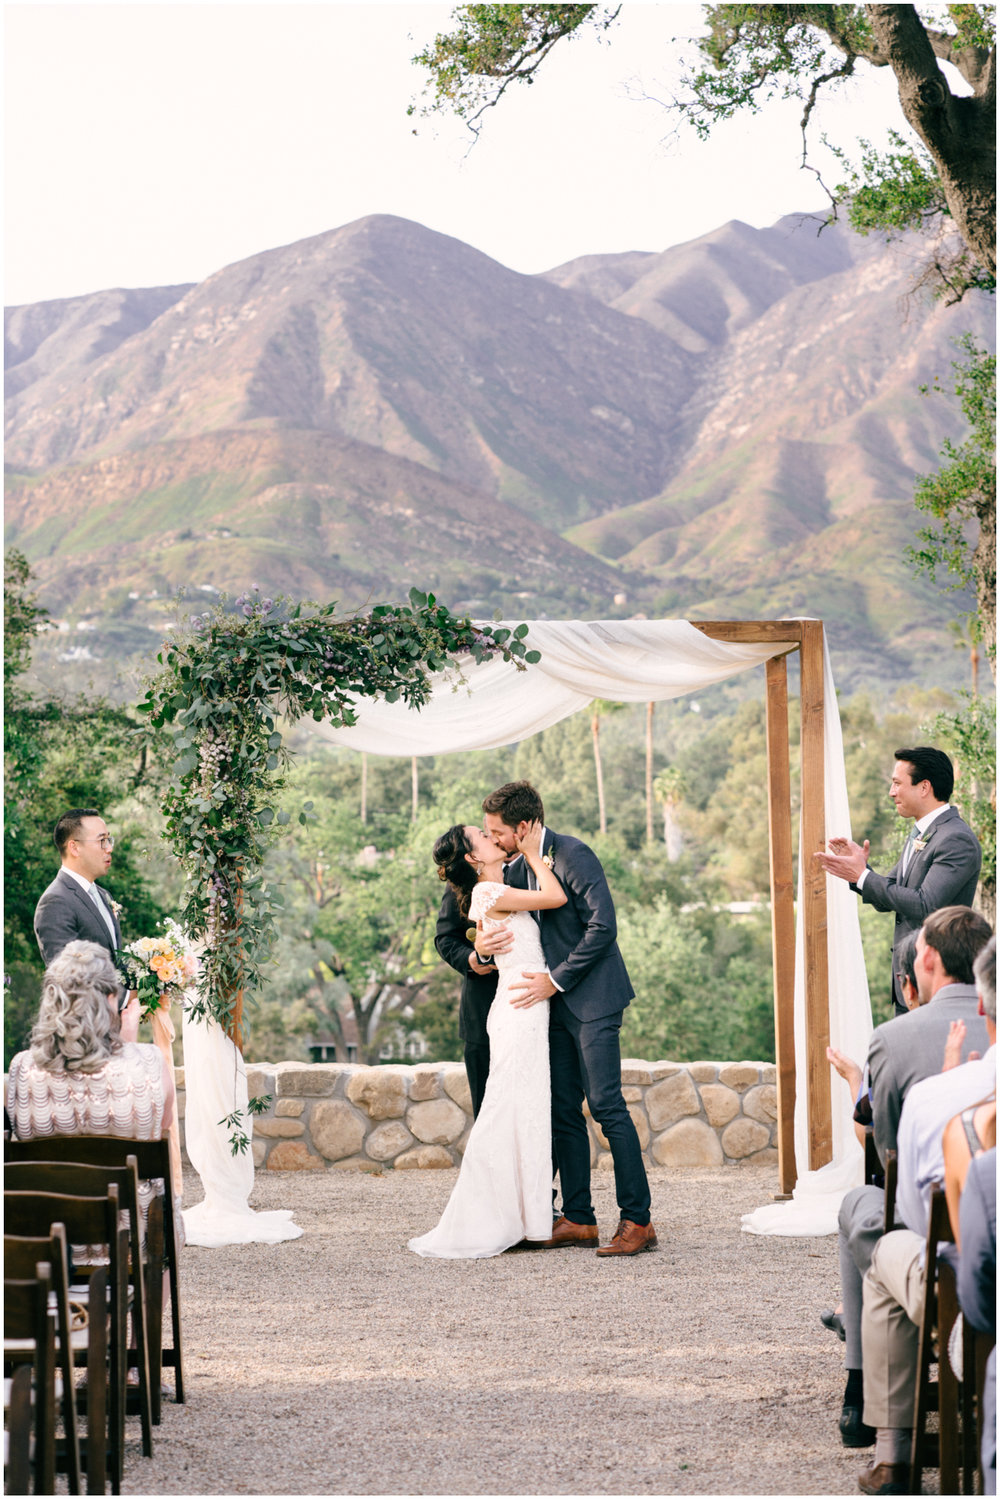 Santa_Barbara_Wedding_Photographer_Ojai_Wedding_Pinnel_Photography_L&E-069.jpg